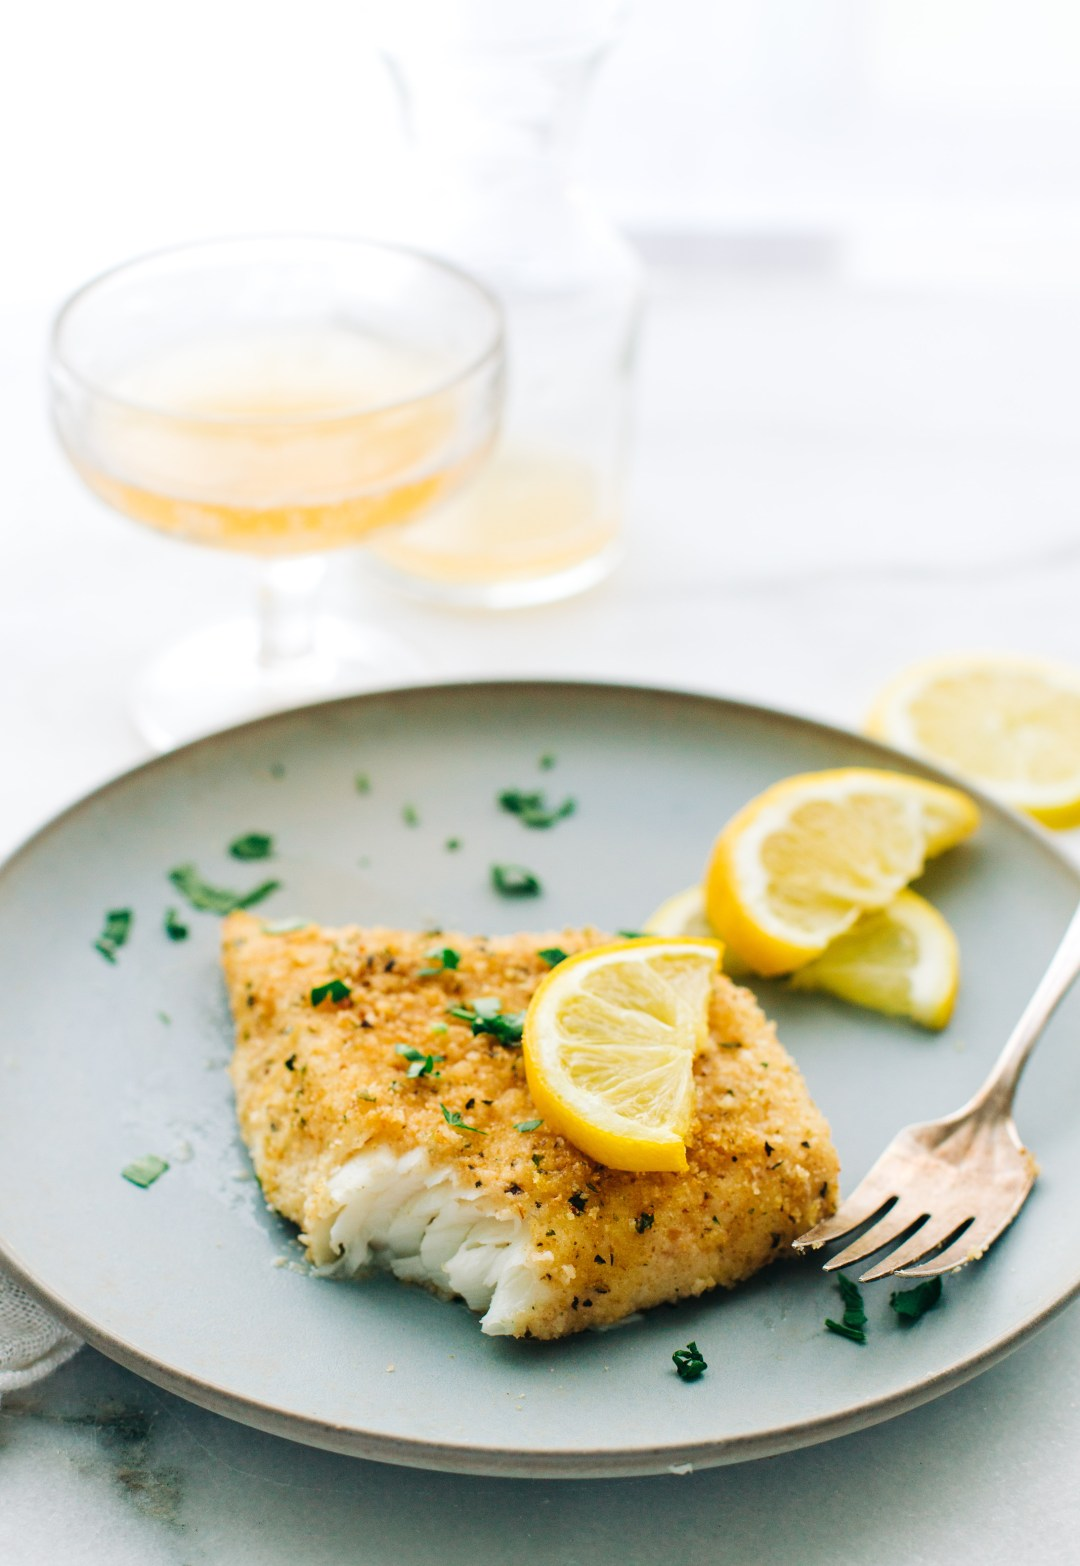 Baked Halibut with bread crumbs